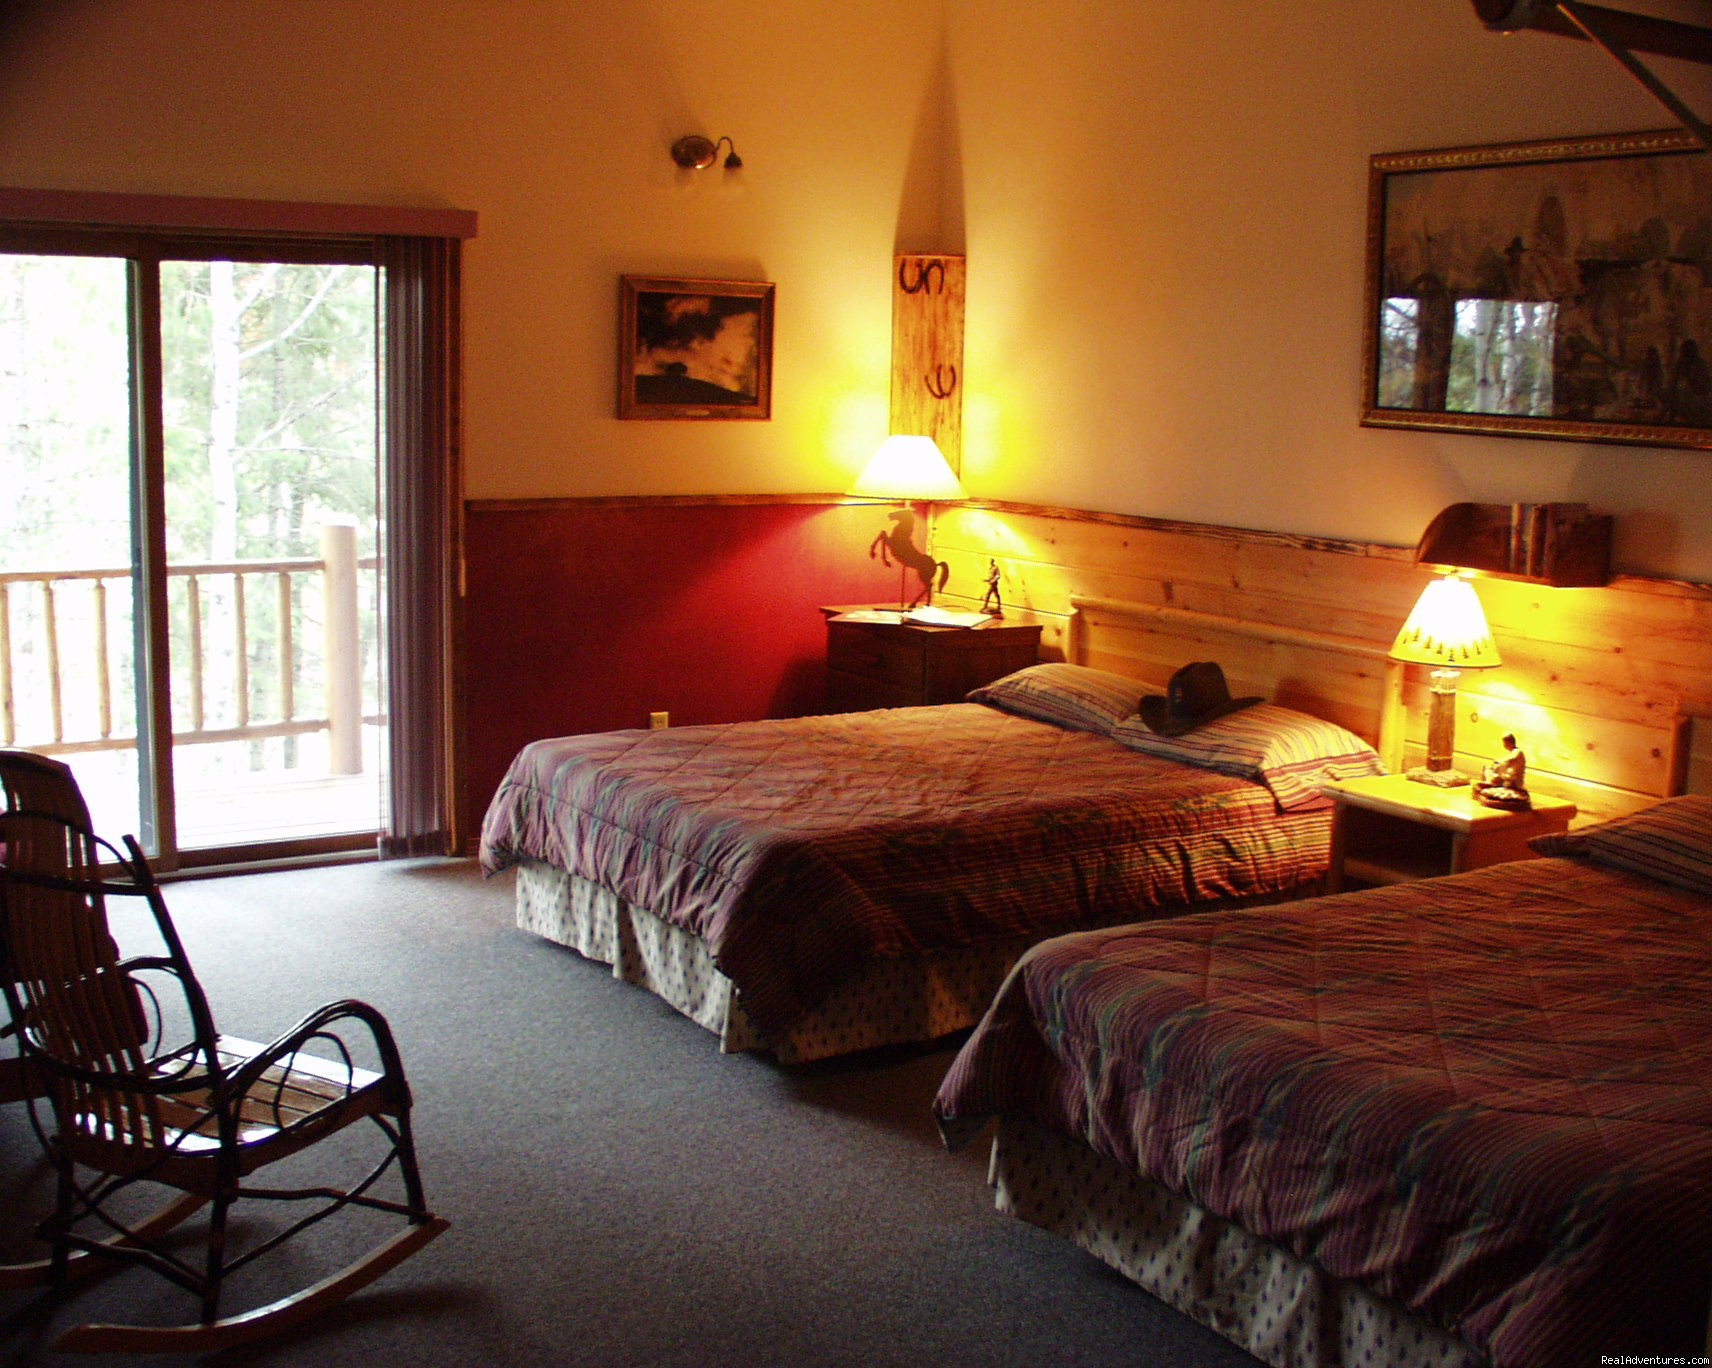 Clean, comfortable rooms w/ western decor